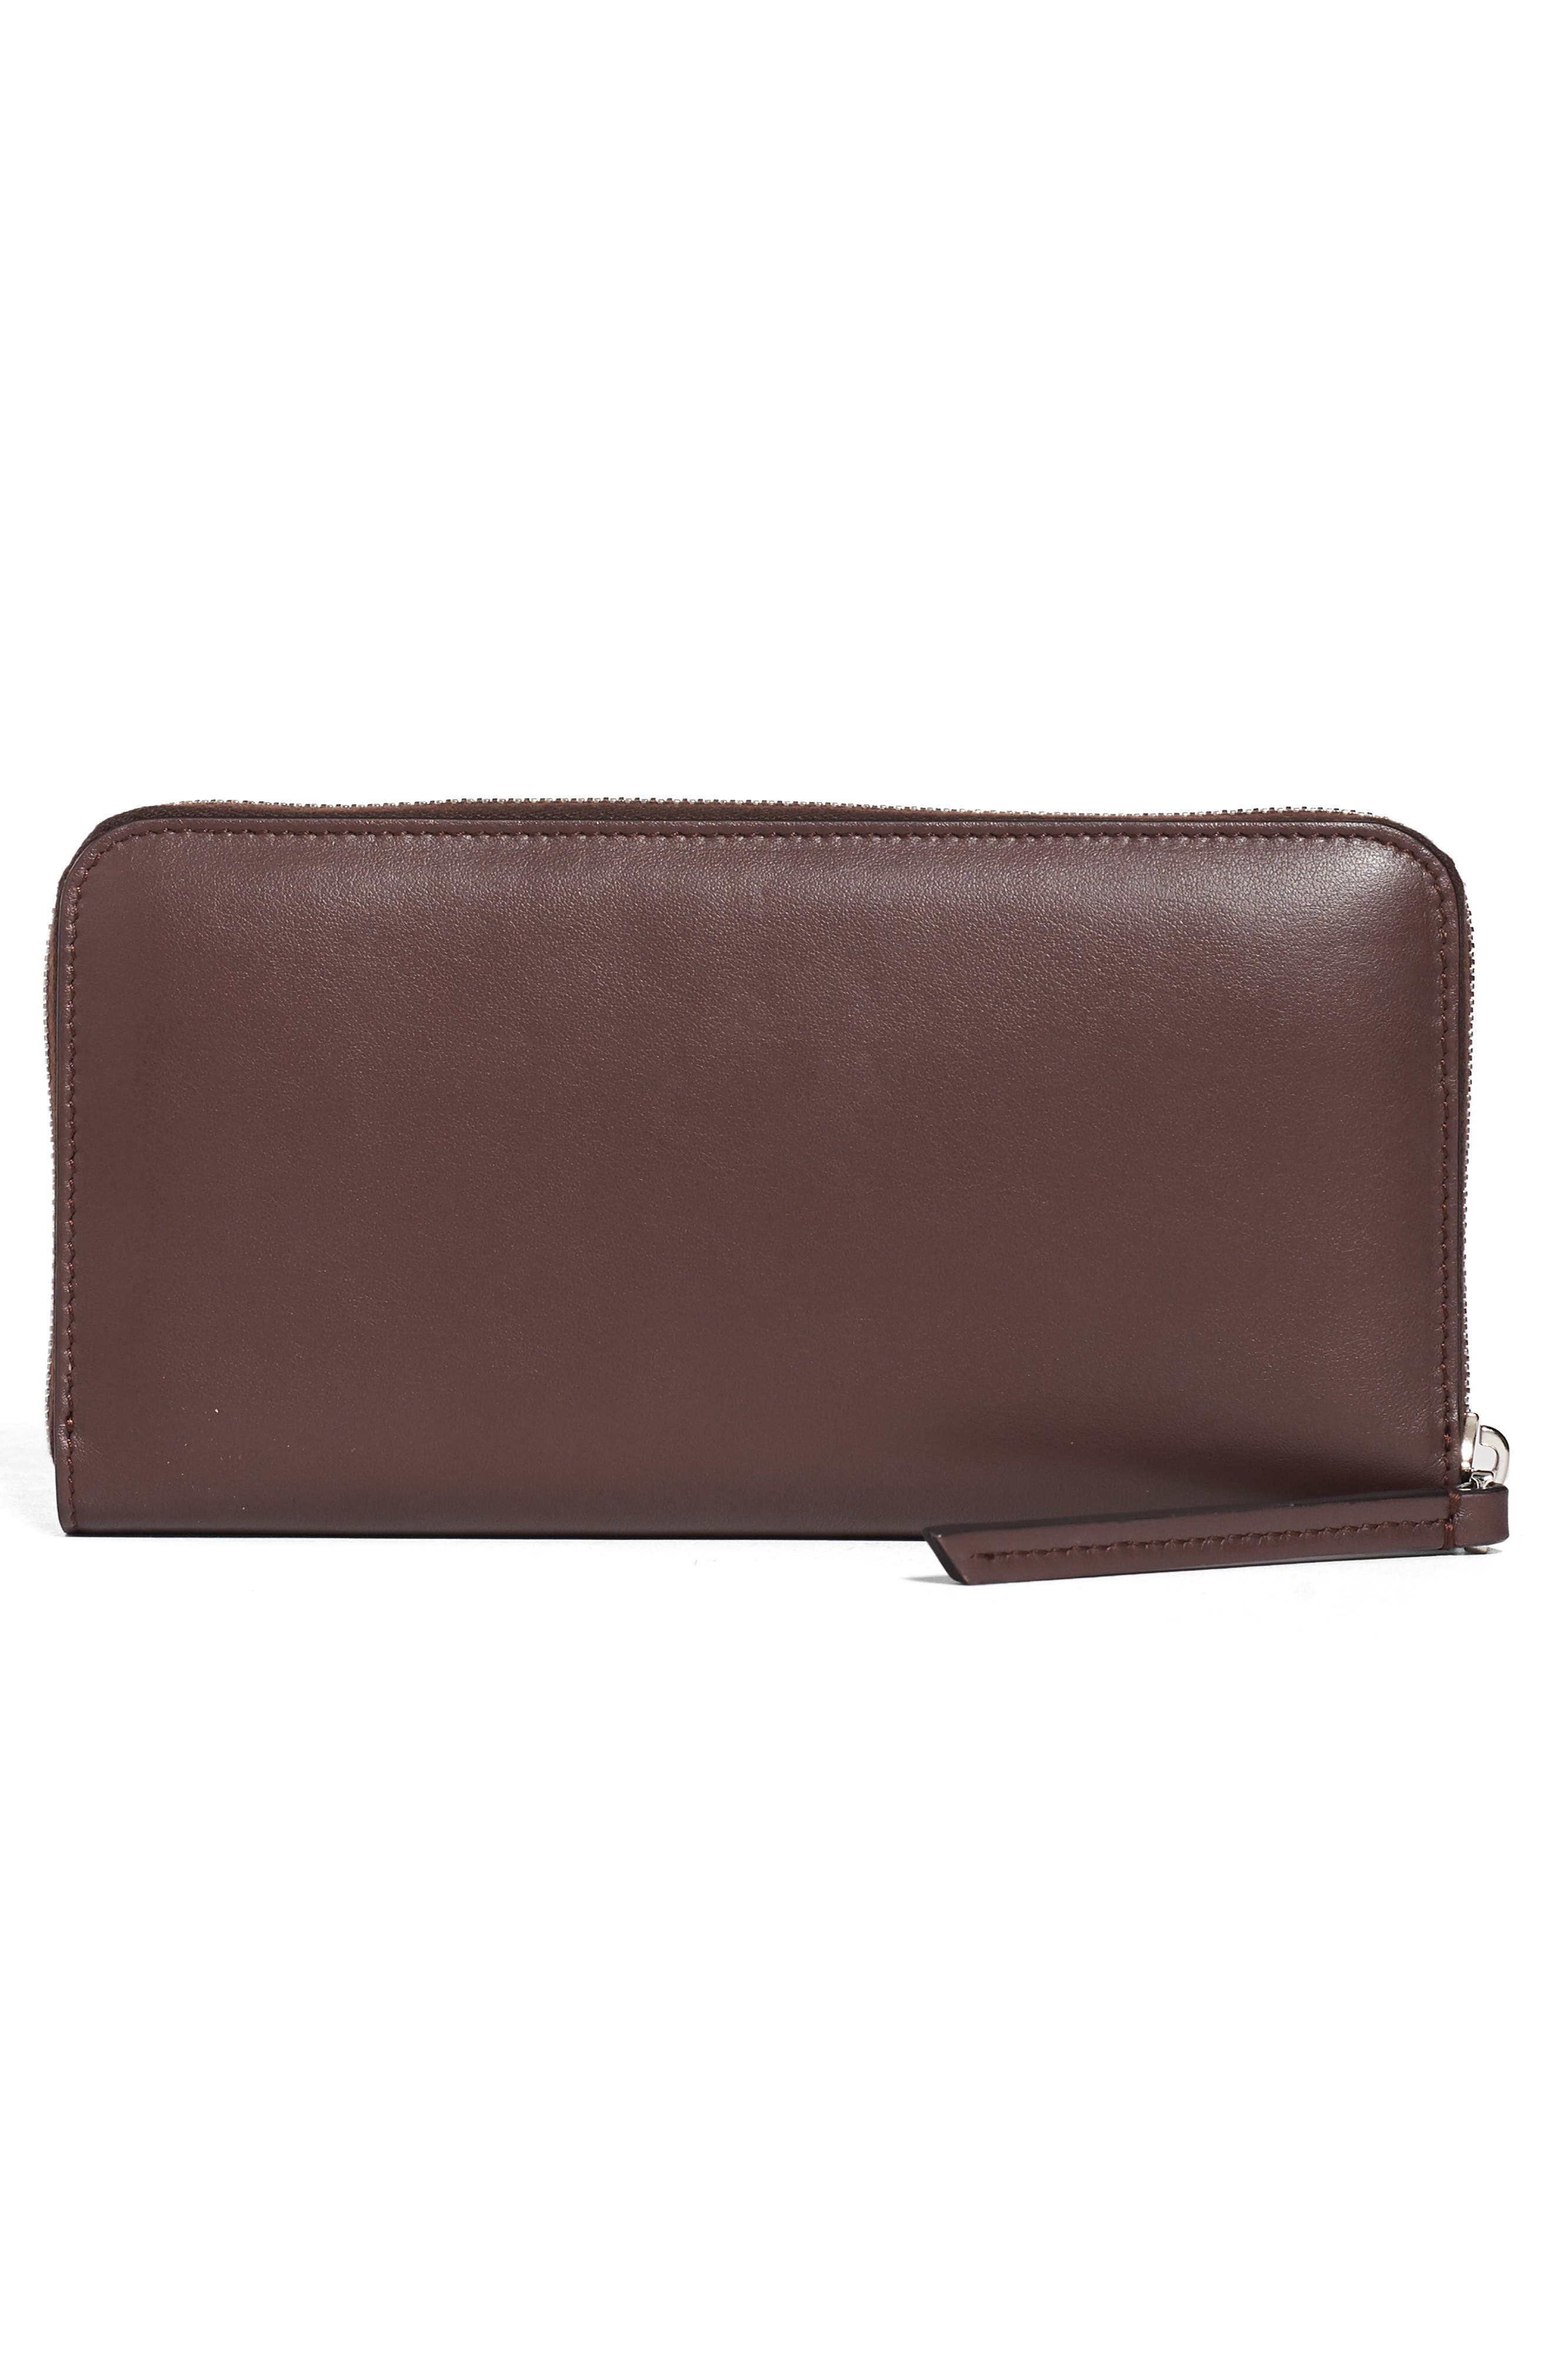 Dotcom Calfskin Leather Clutch Wallet,                             Alternate thumbnail 4, color,                             Red